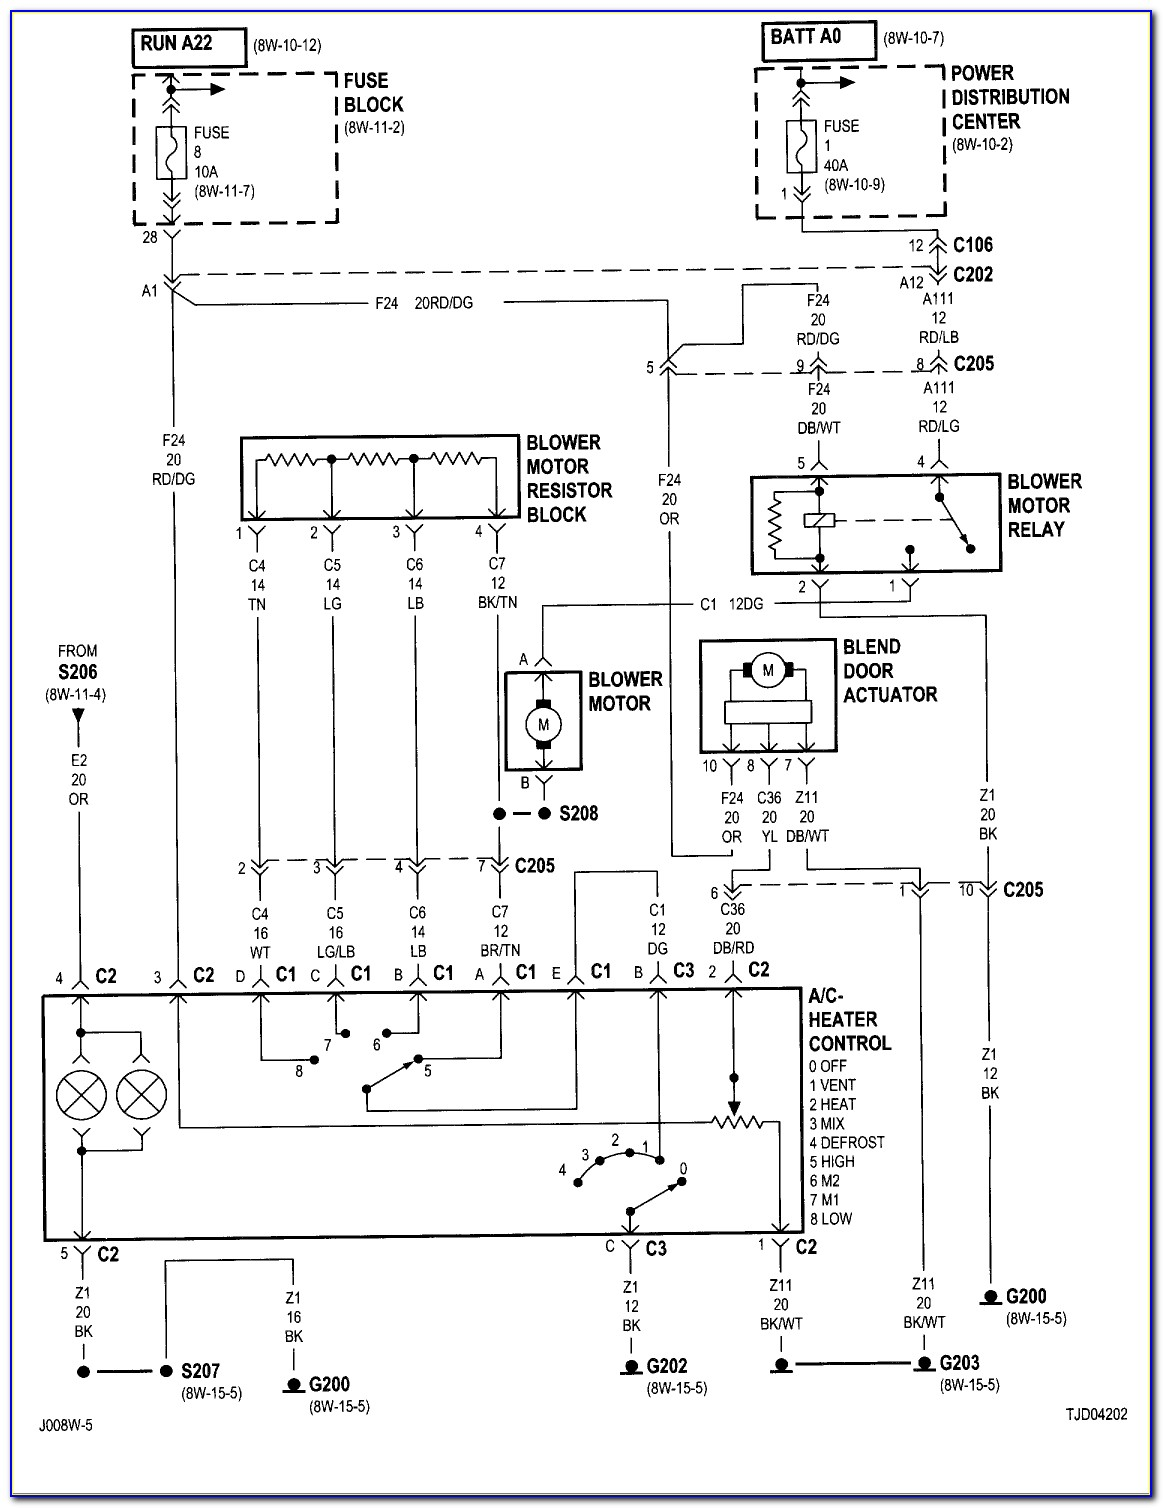 2003 Jeep Wrangler Wiring Harness - Diagram Design Sources electrical-solid  - electrical-solid.nius-icbosa.itnius-icbosa.it